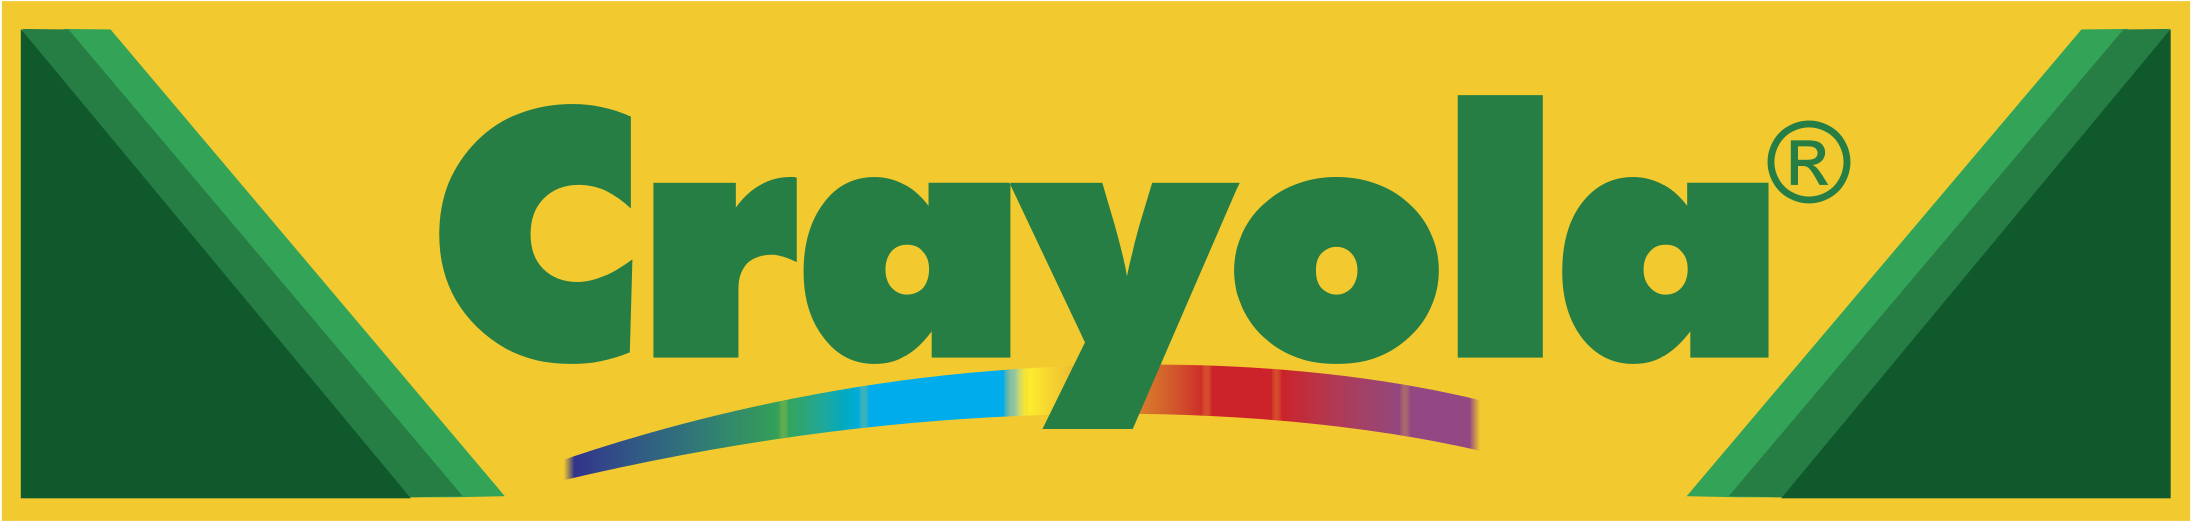 HD Crayola Logo Png Transparent.